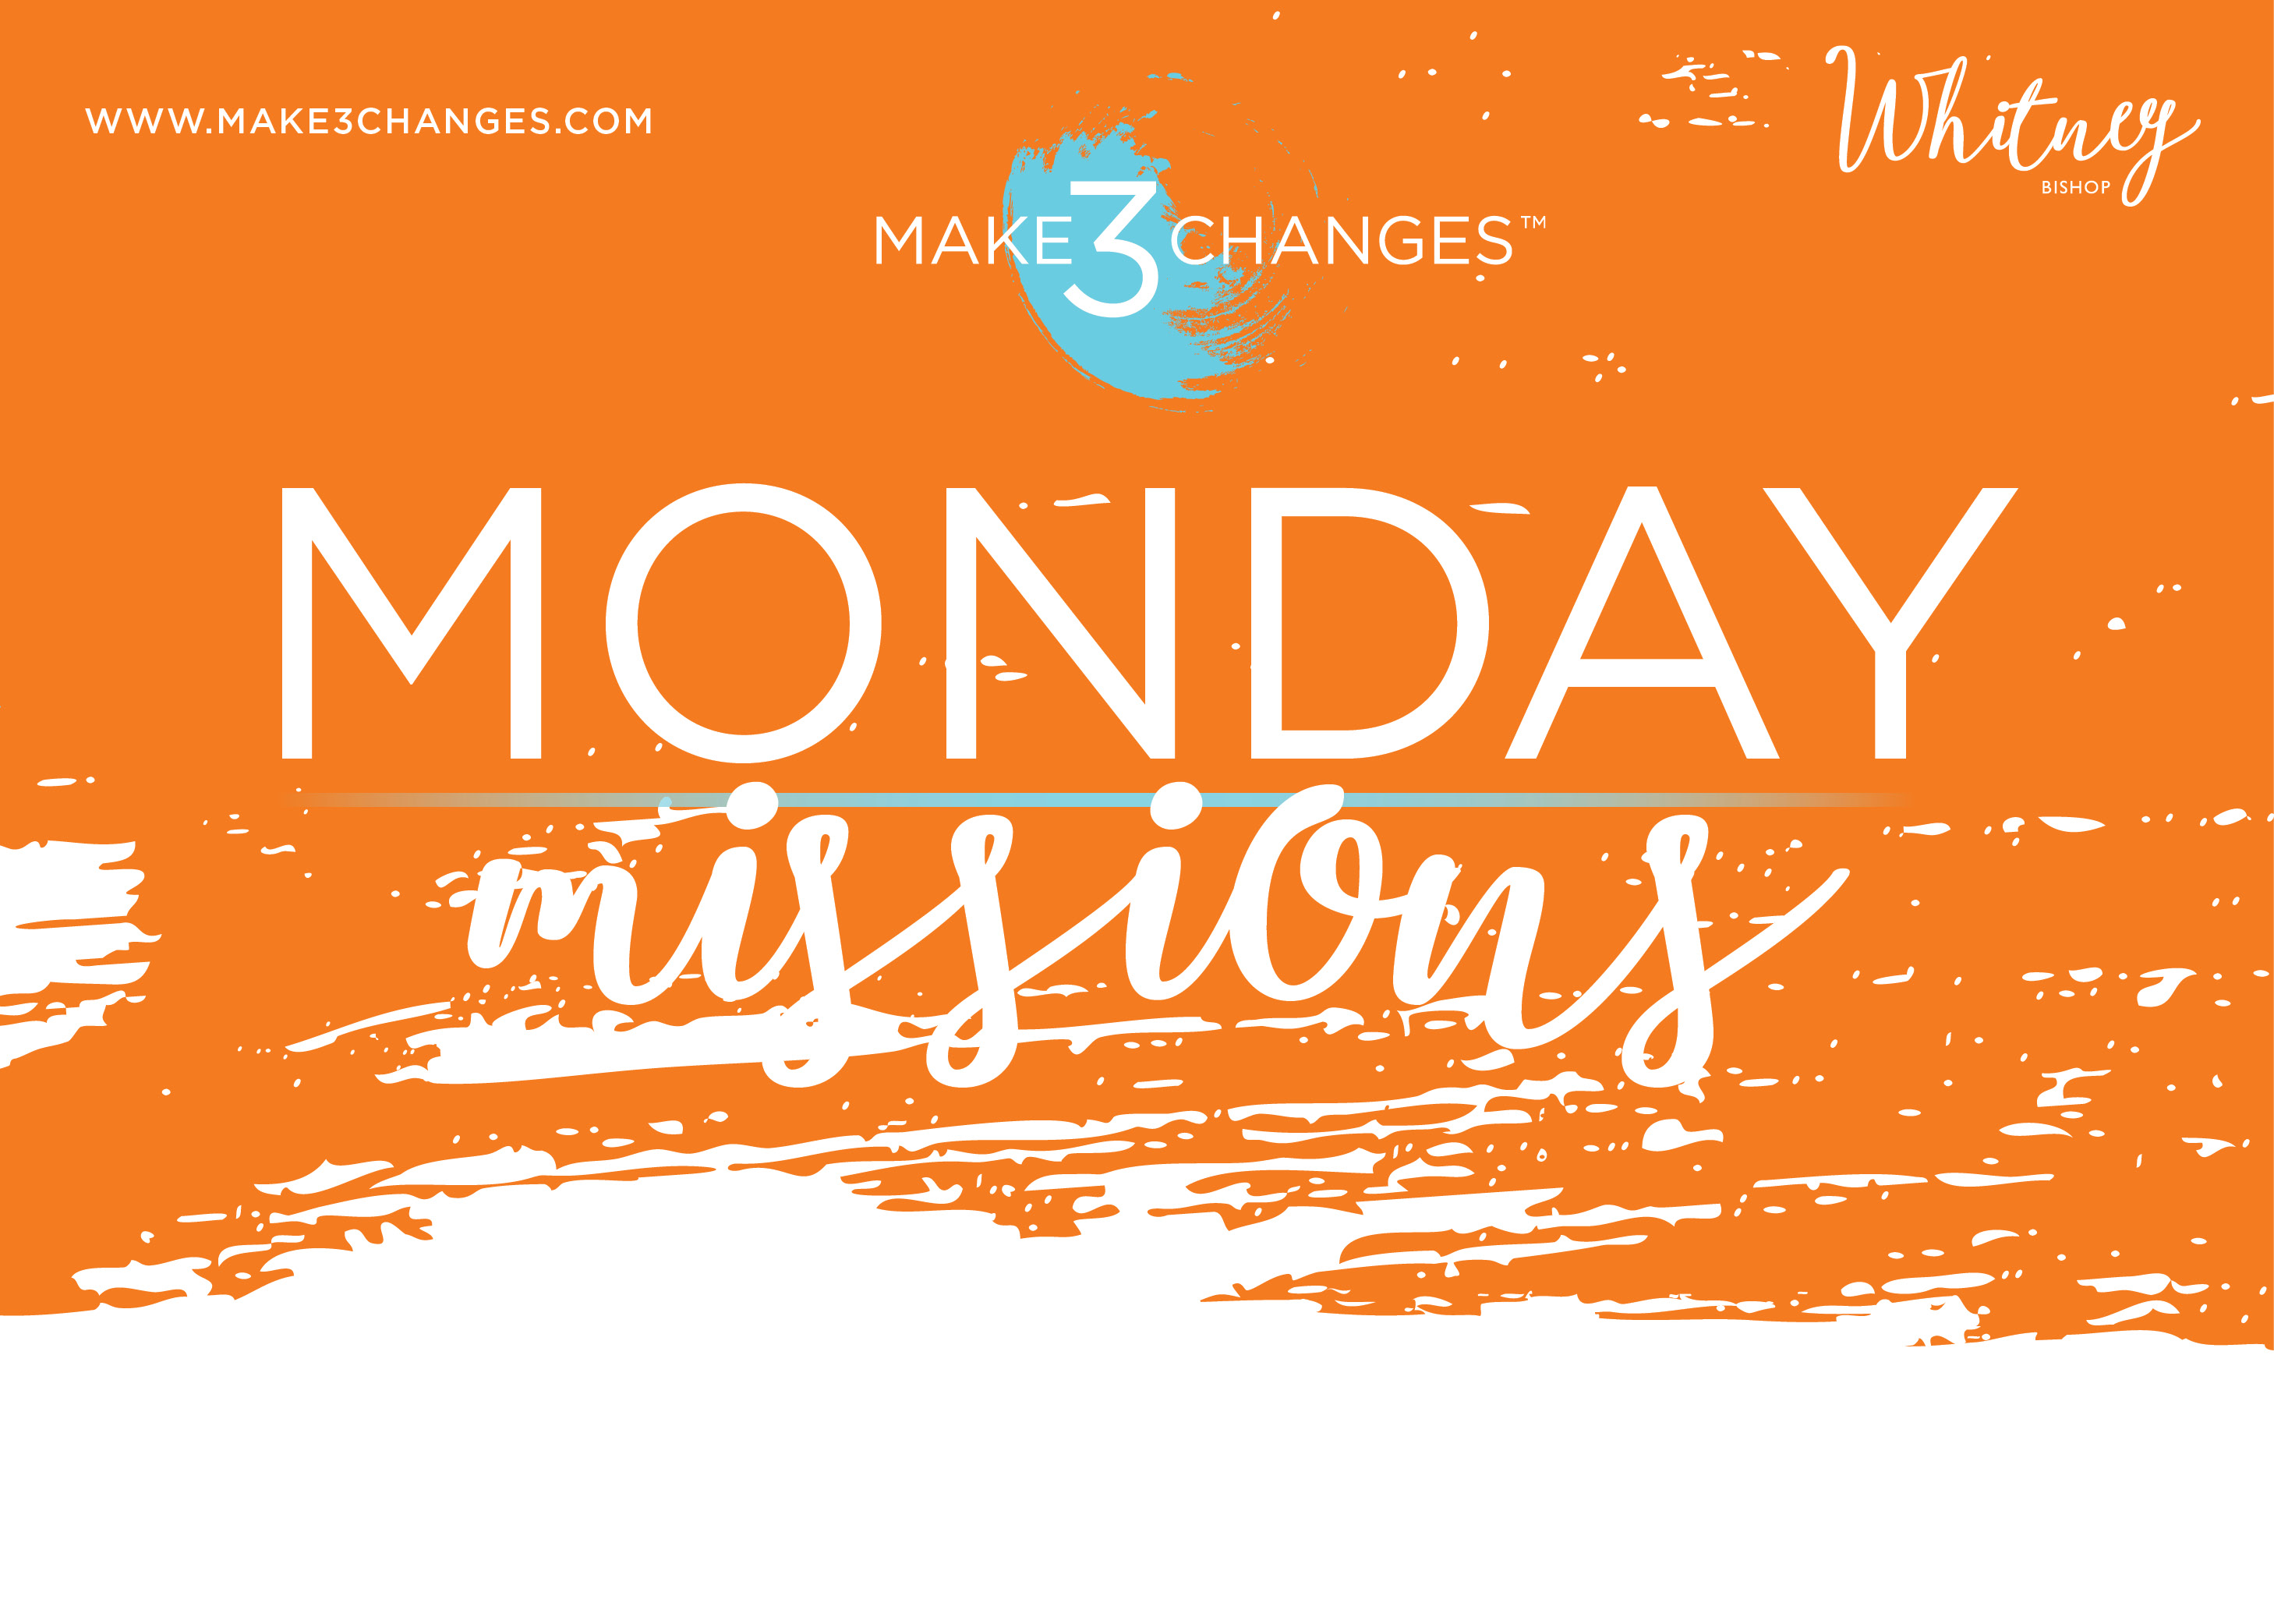 Make 3 Changes™ Monday Missions